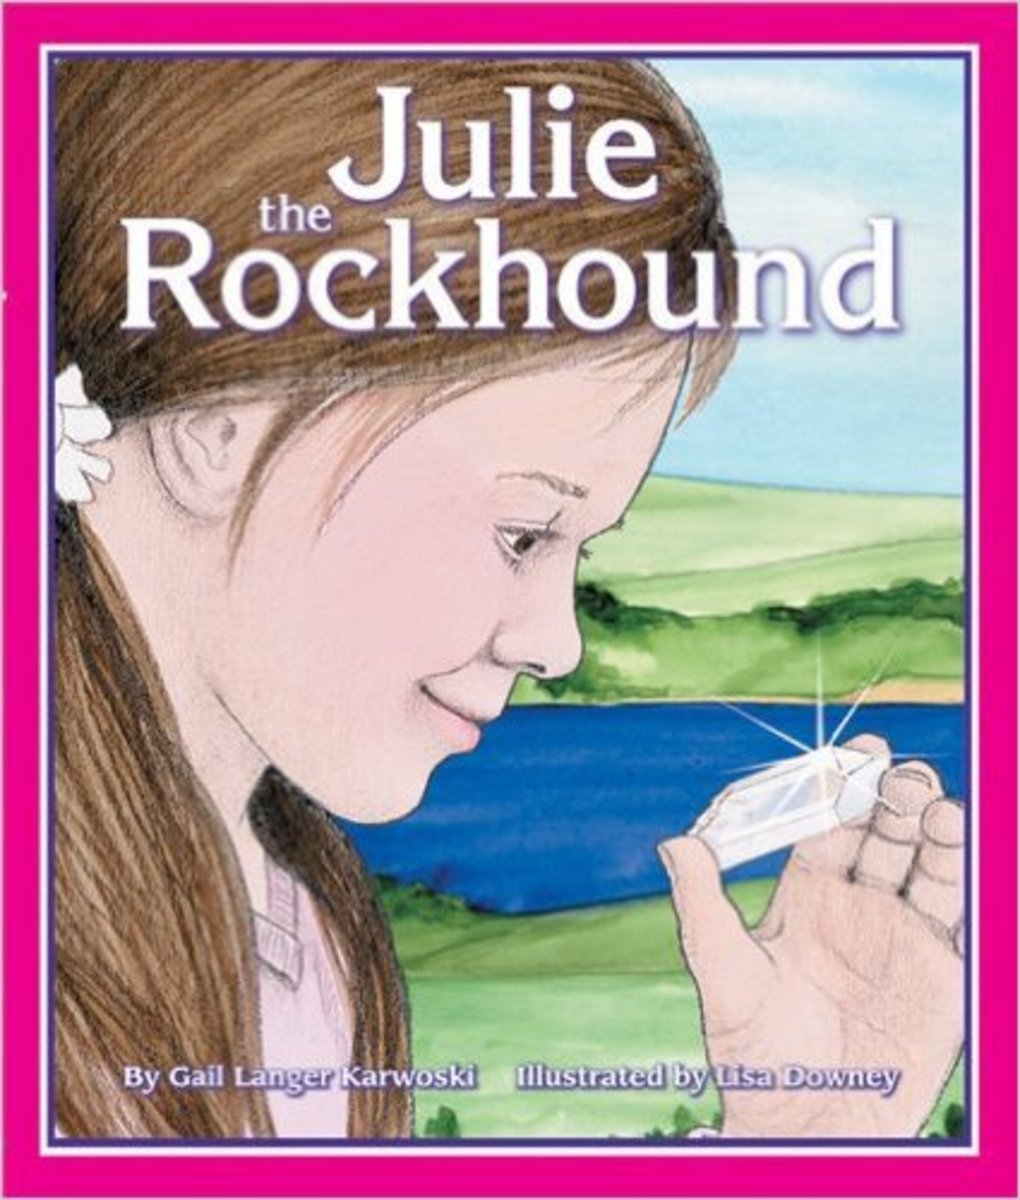 Julie the Rockhound by Gail Langer Karwoski